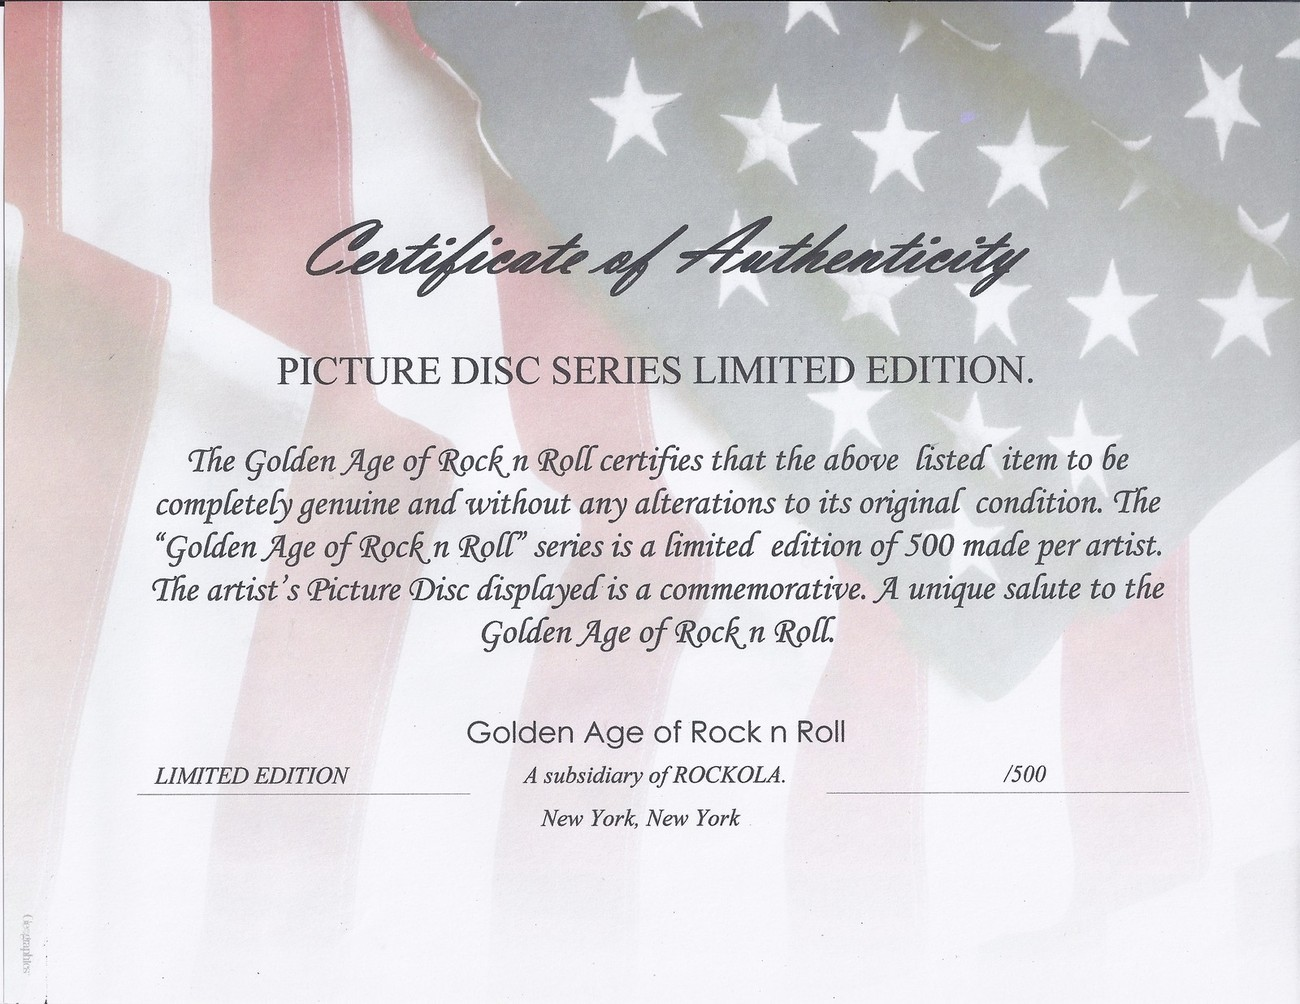 DEATH CAB FOR CUTIE LTD EDITION PICTURE CD COLLECTIBLE AWARD QUALITY DISPLAY